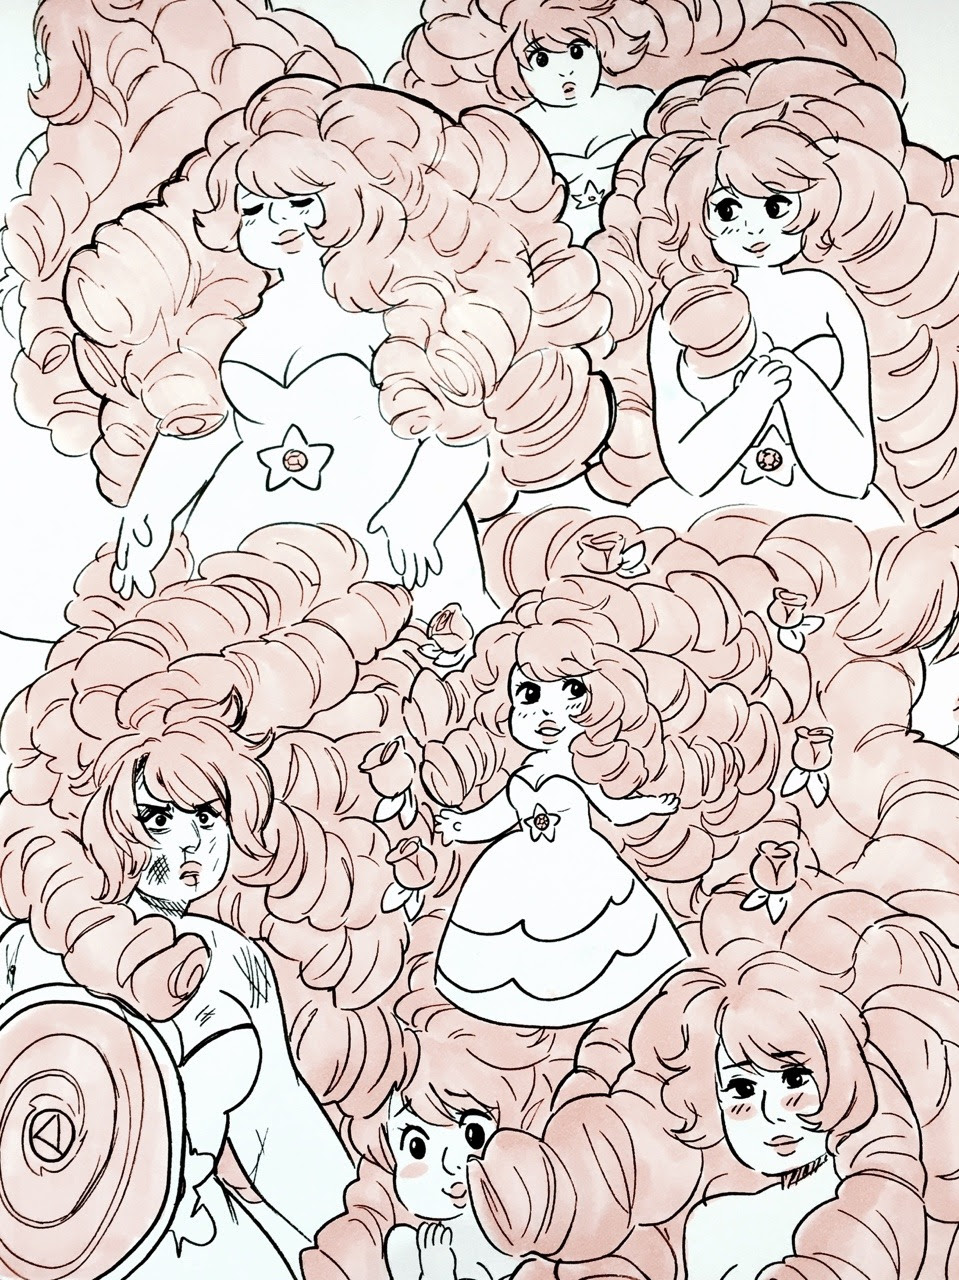 Rose Quartz sketches